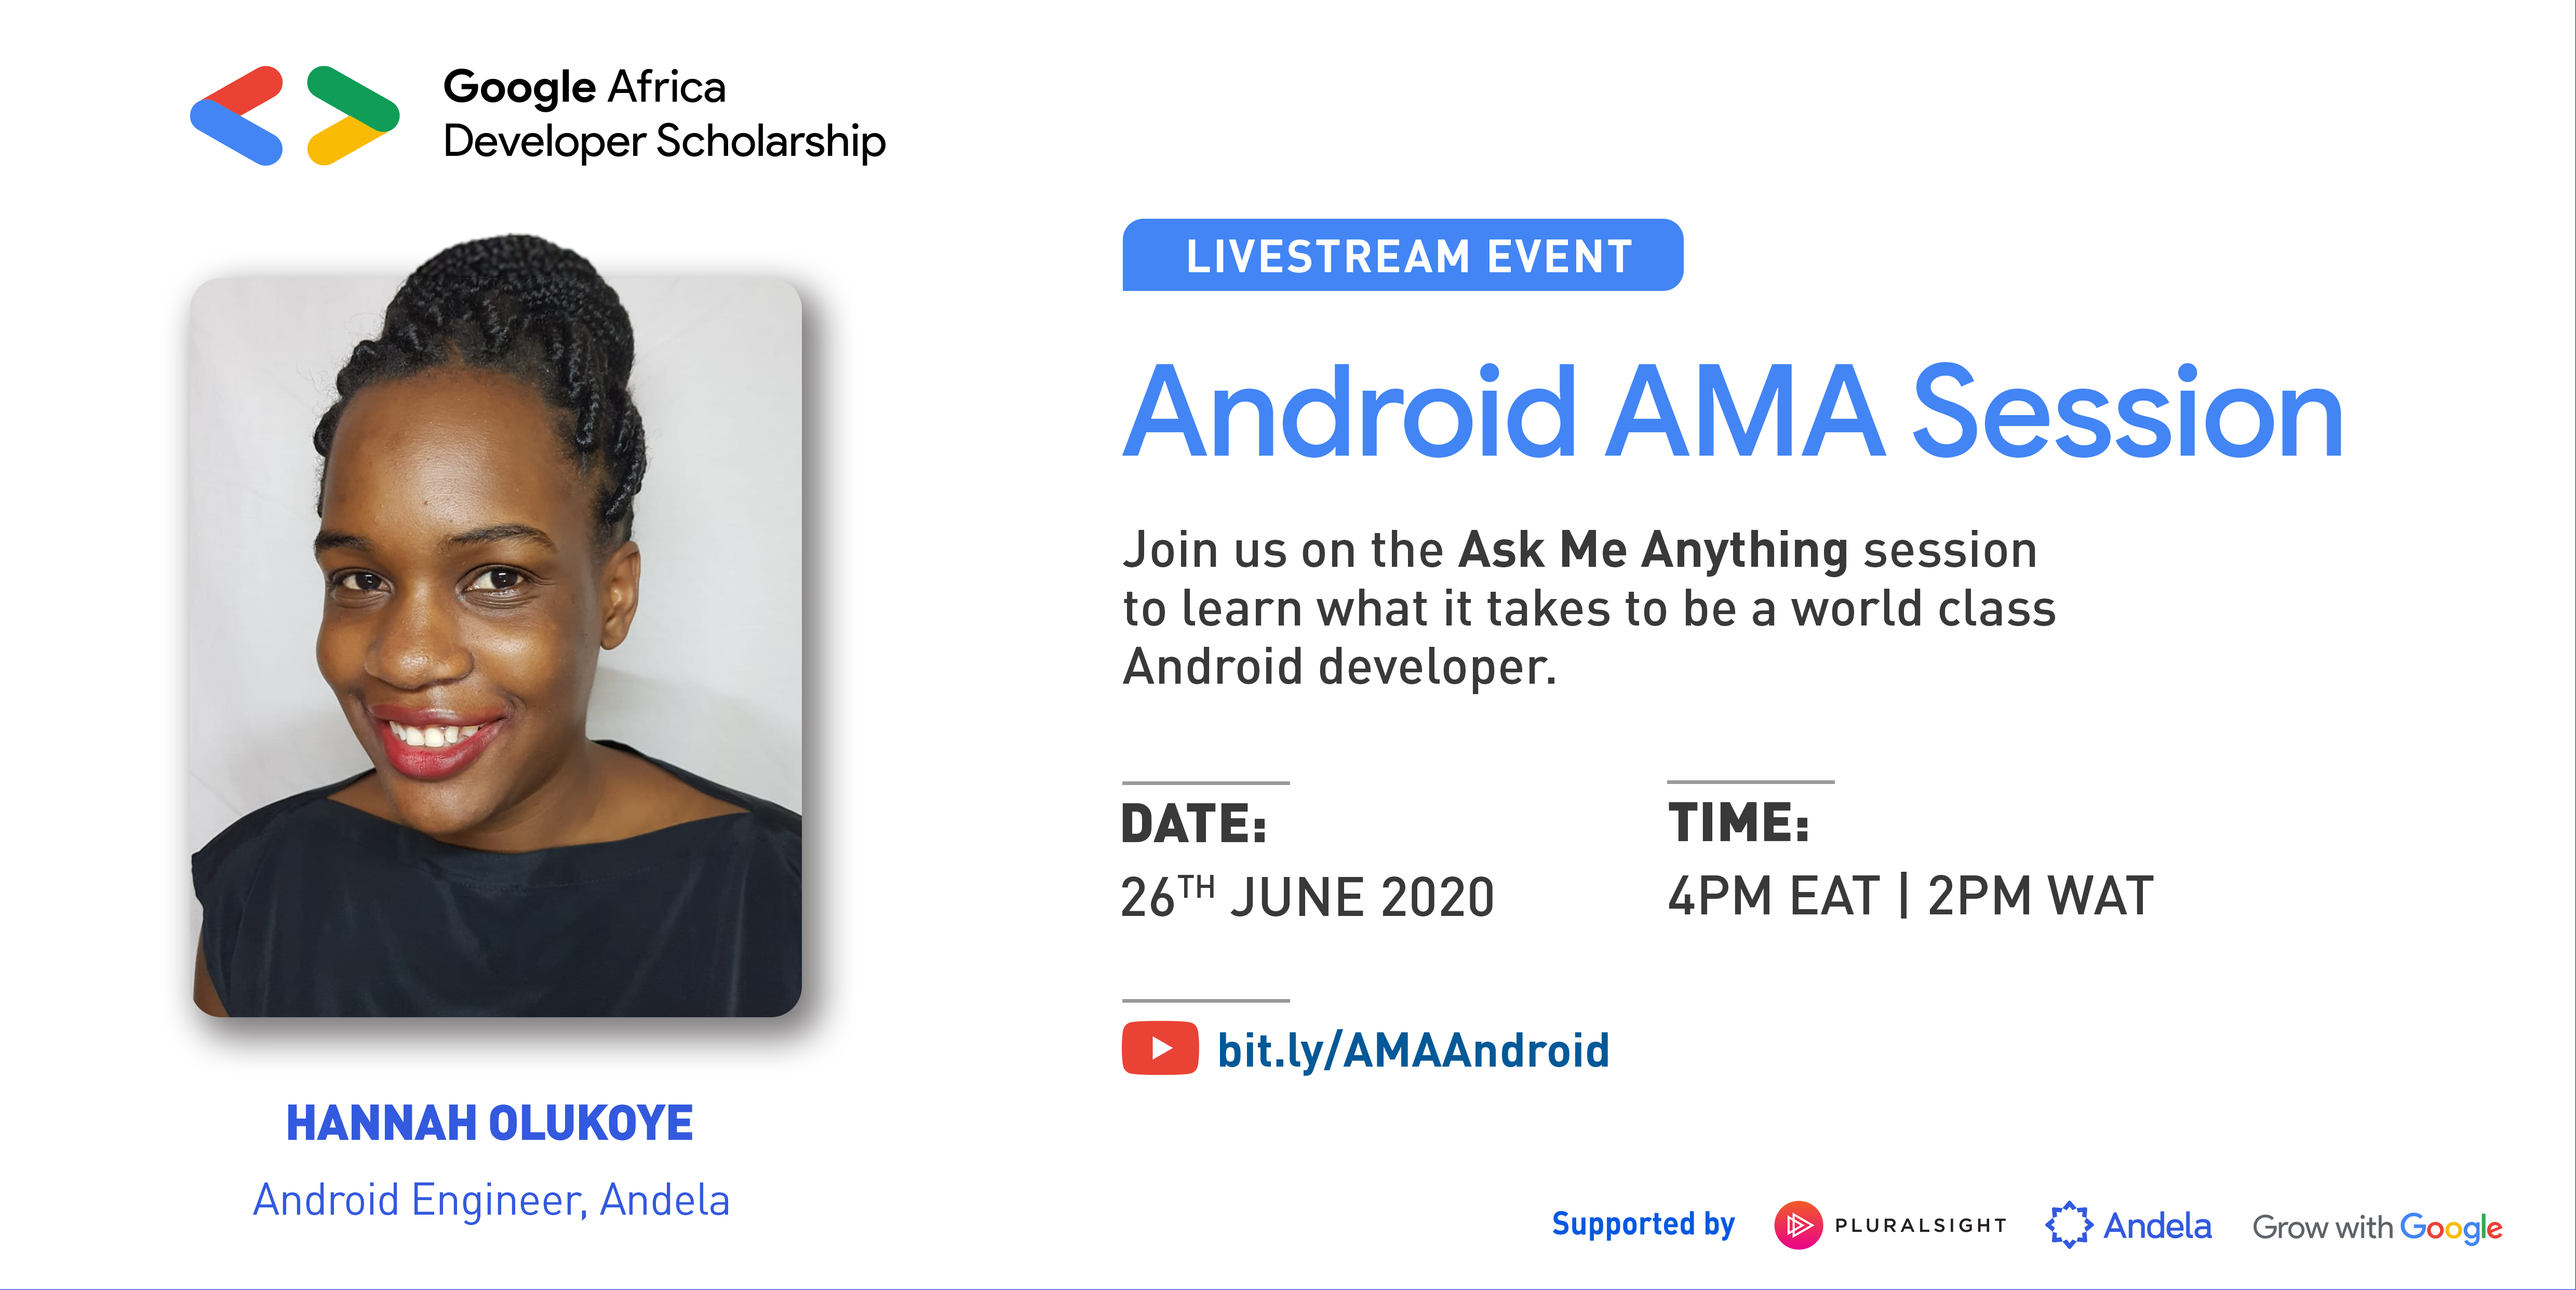 Android AMA Session